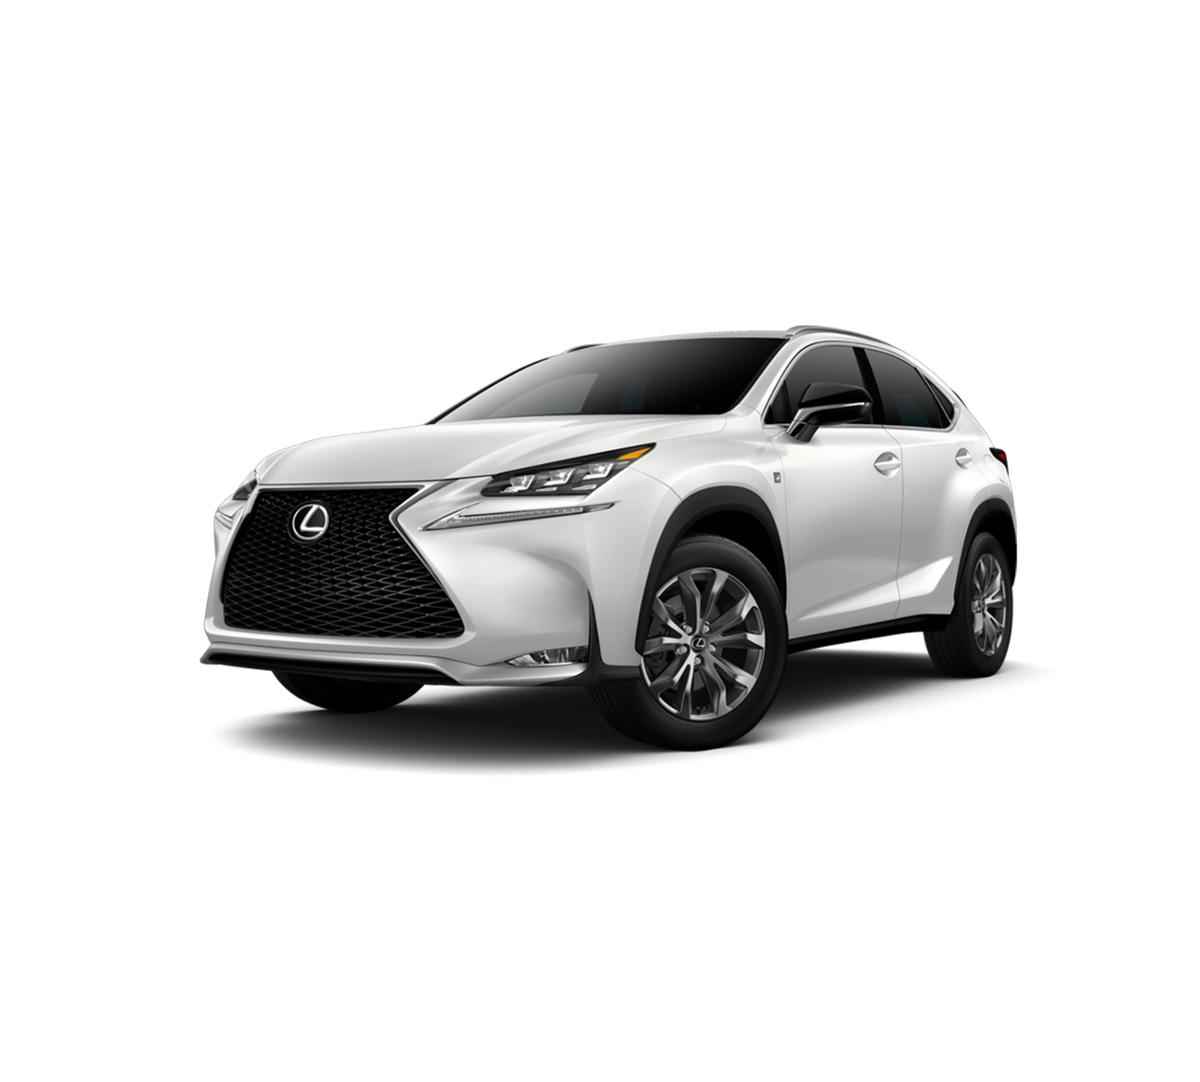 2017 Lexus NX Turbo Vehicle Photo in Sacramento, CA 95821